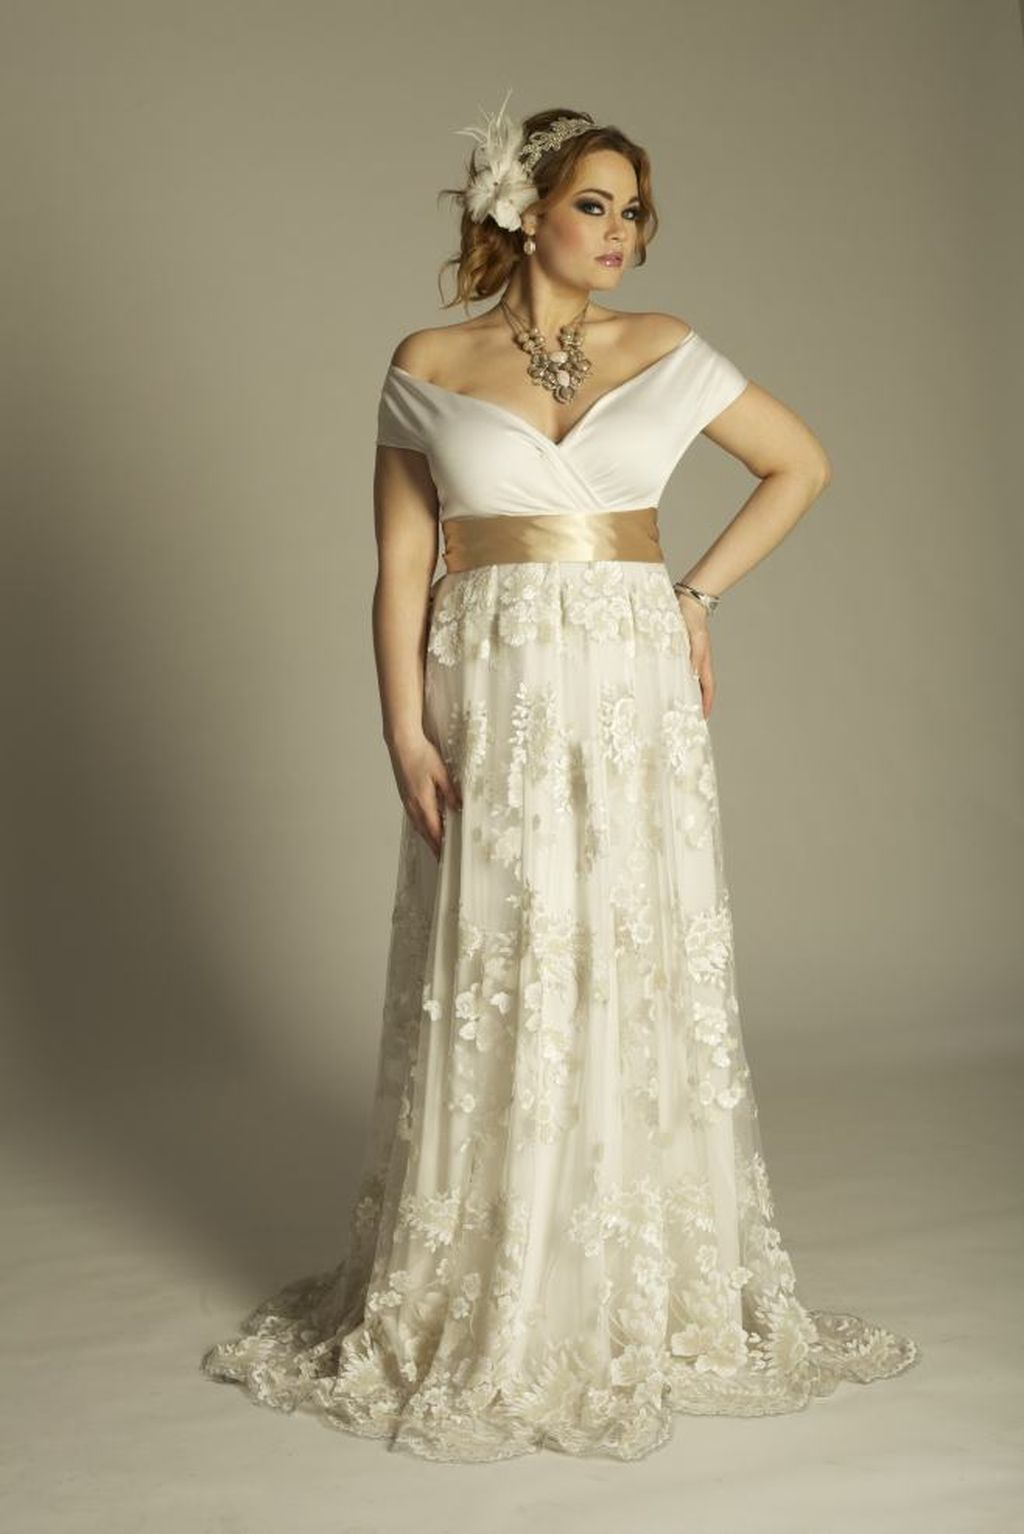 Vintage lace dress wedding   Stunning Plus Size Winter Wedding Dress Ideas with Lace  Dress